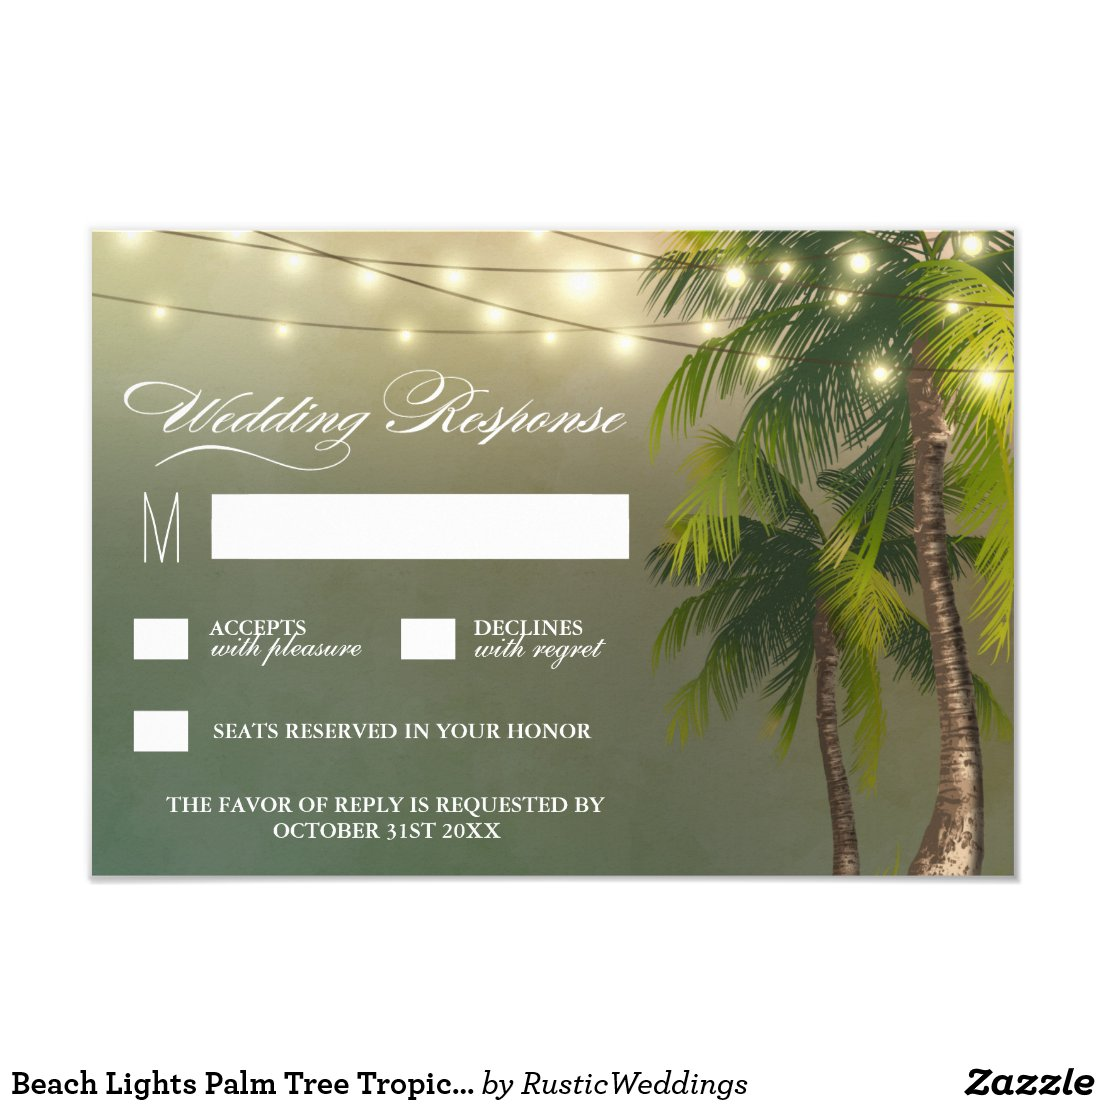 Beach Lights Palm Tree Tropical Wedding RSVP Cards